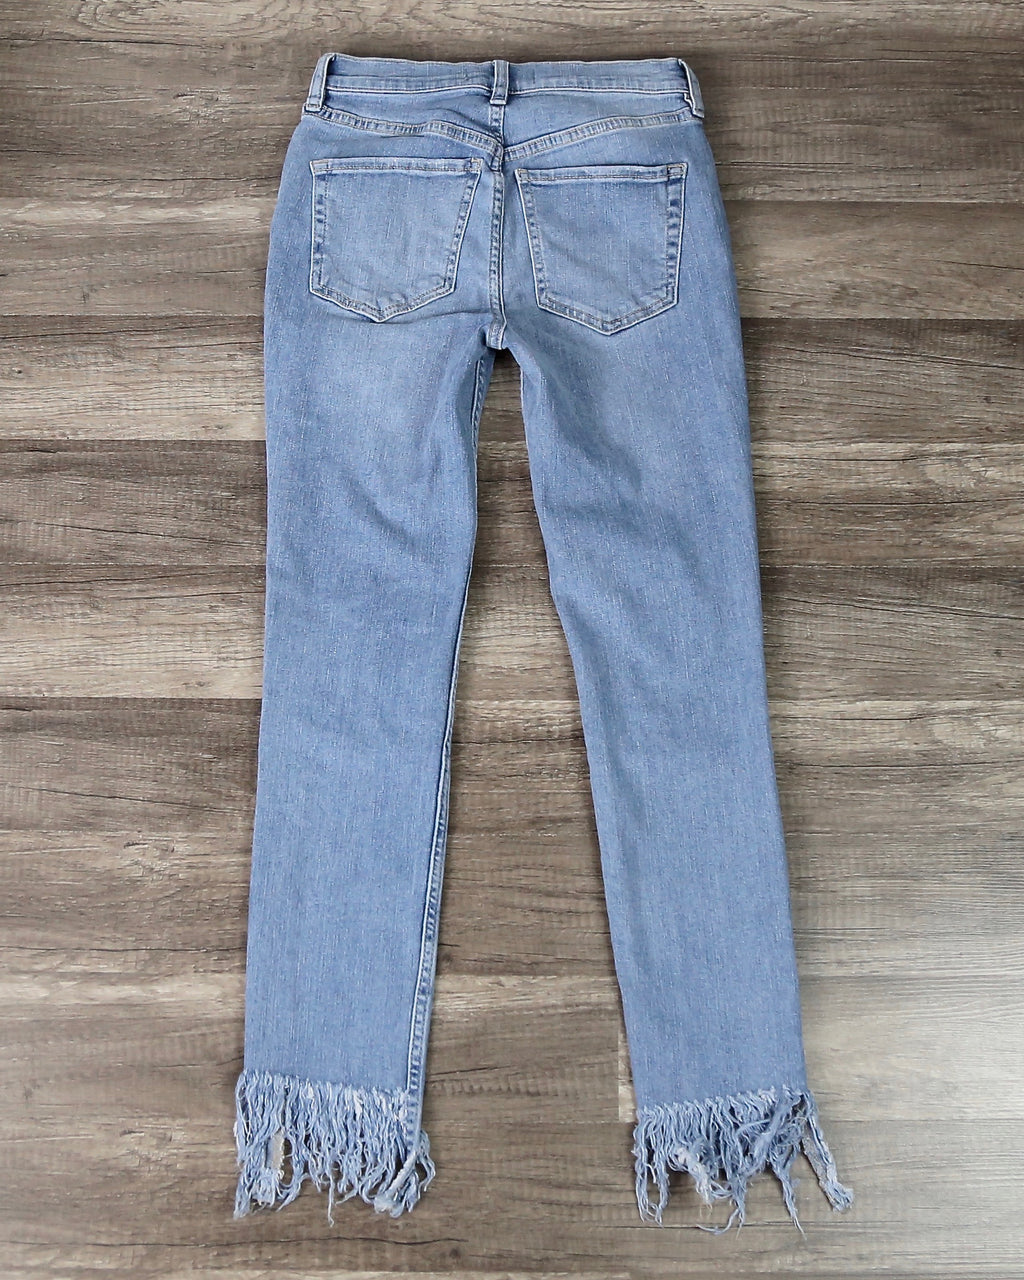 Free People - Great Heights Frayed Skinny Jeans in Regal Blue